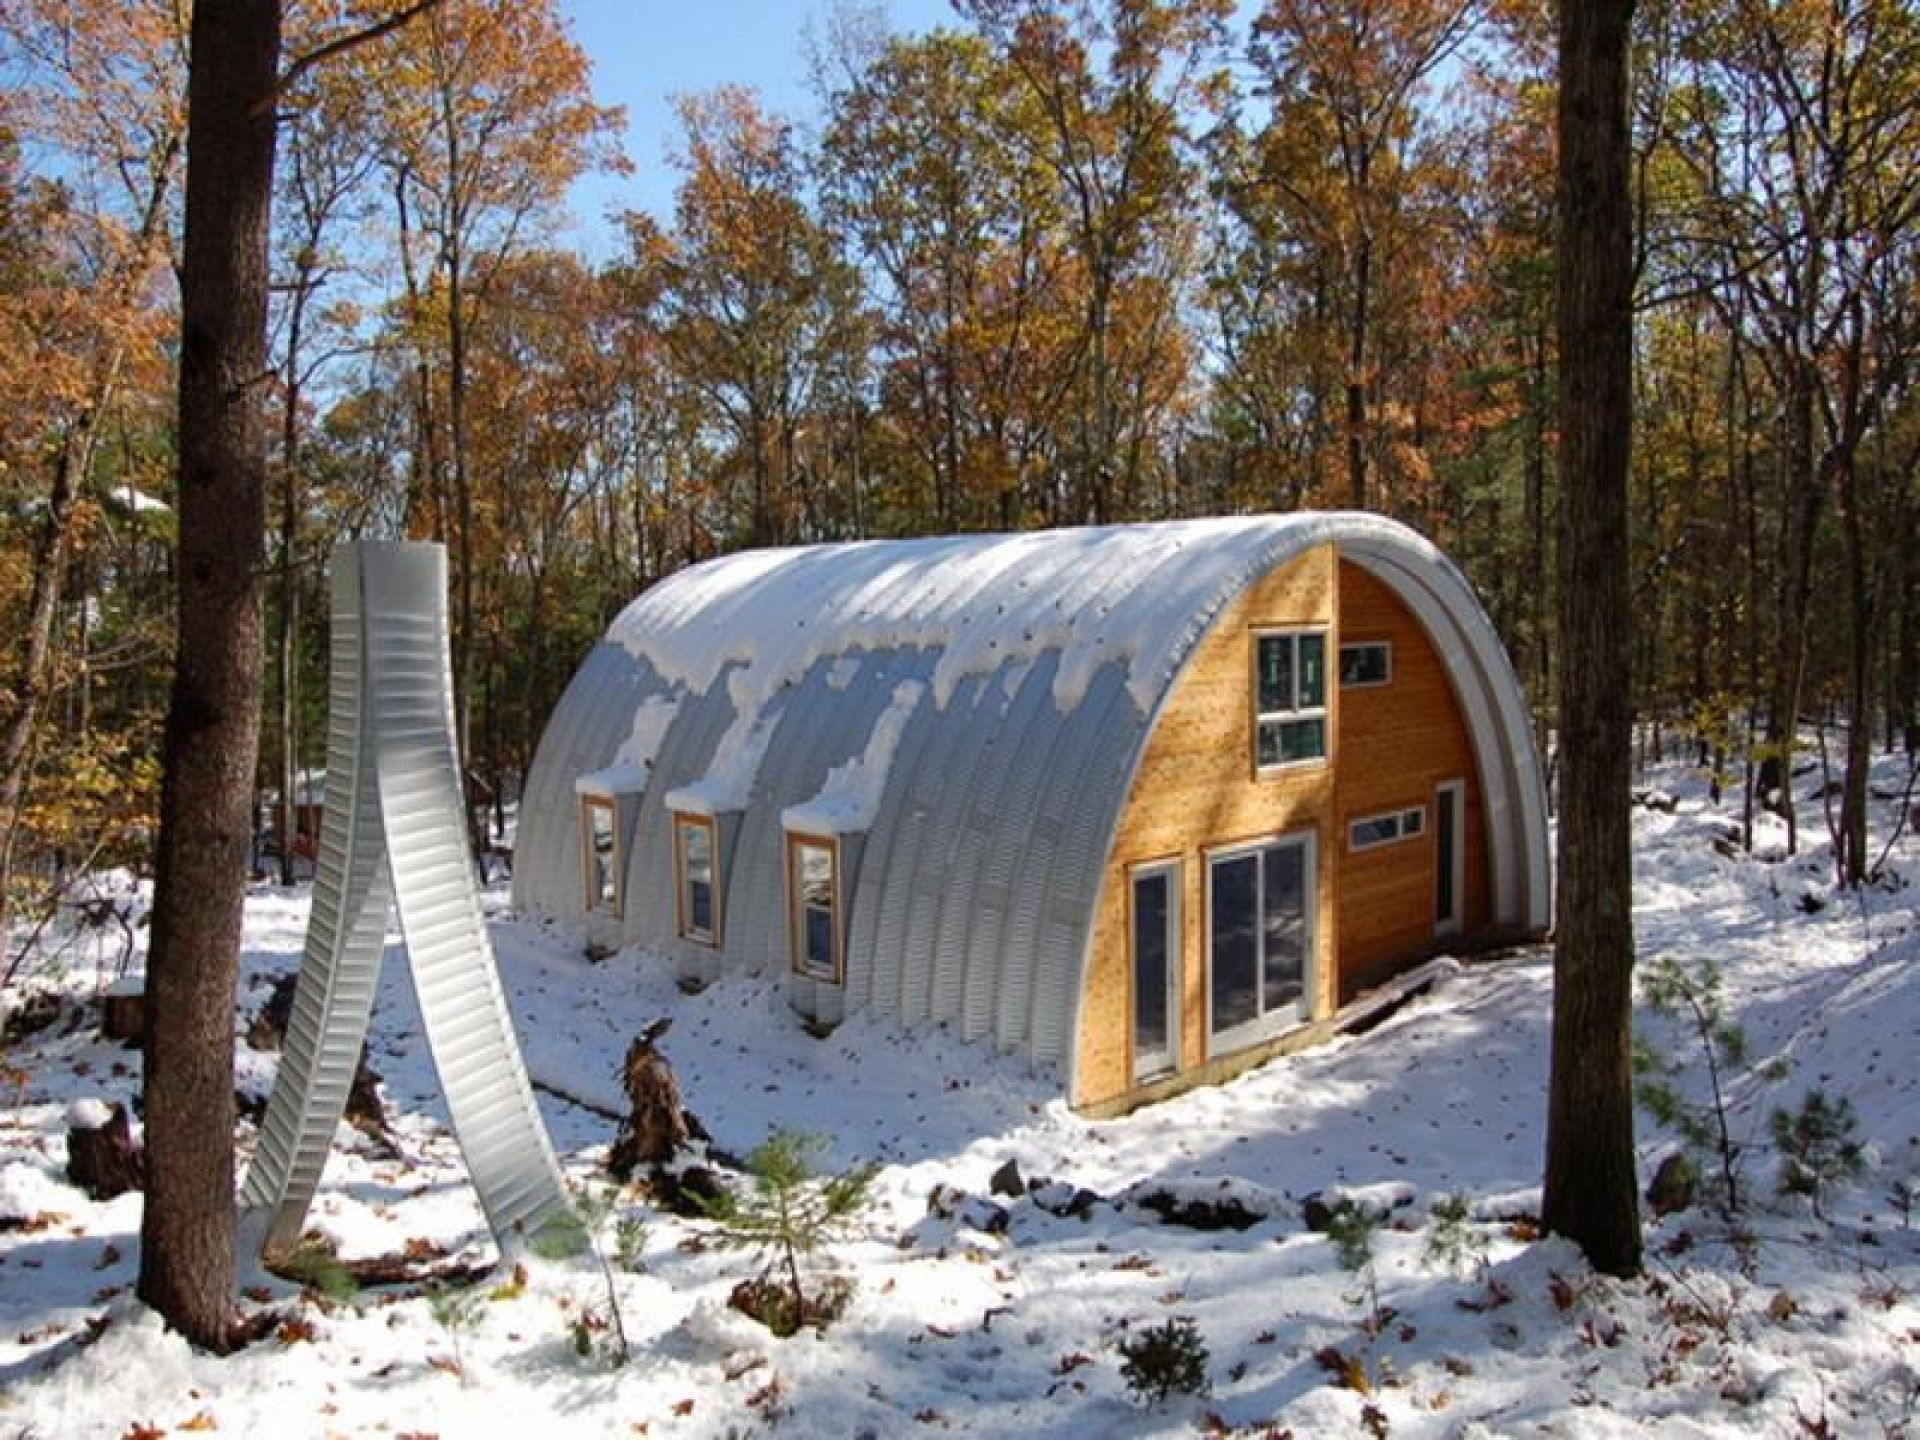 Military Surplus Quonset Huts For Sale >> Things To Know Before Building A Quonset Hut Homes Quonset Hut